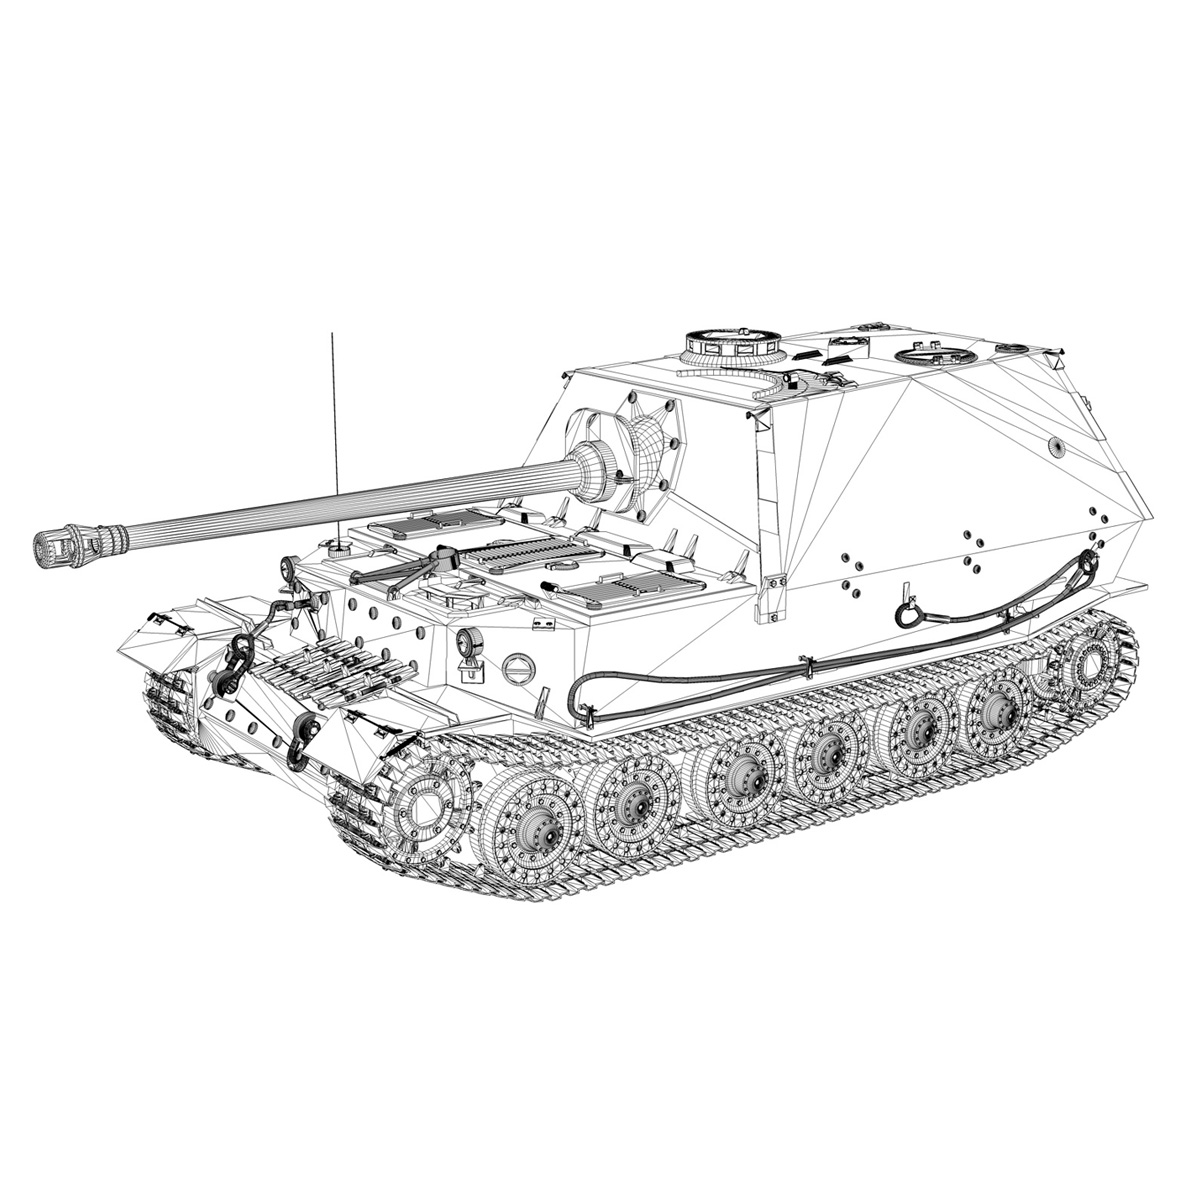 sd.kfz 184 tank destroyer tiger (p) elefant 3d model 3ds fbx c4d lwo obj 190012